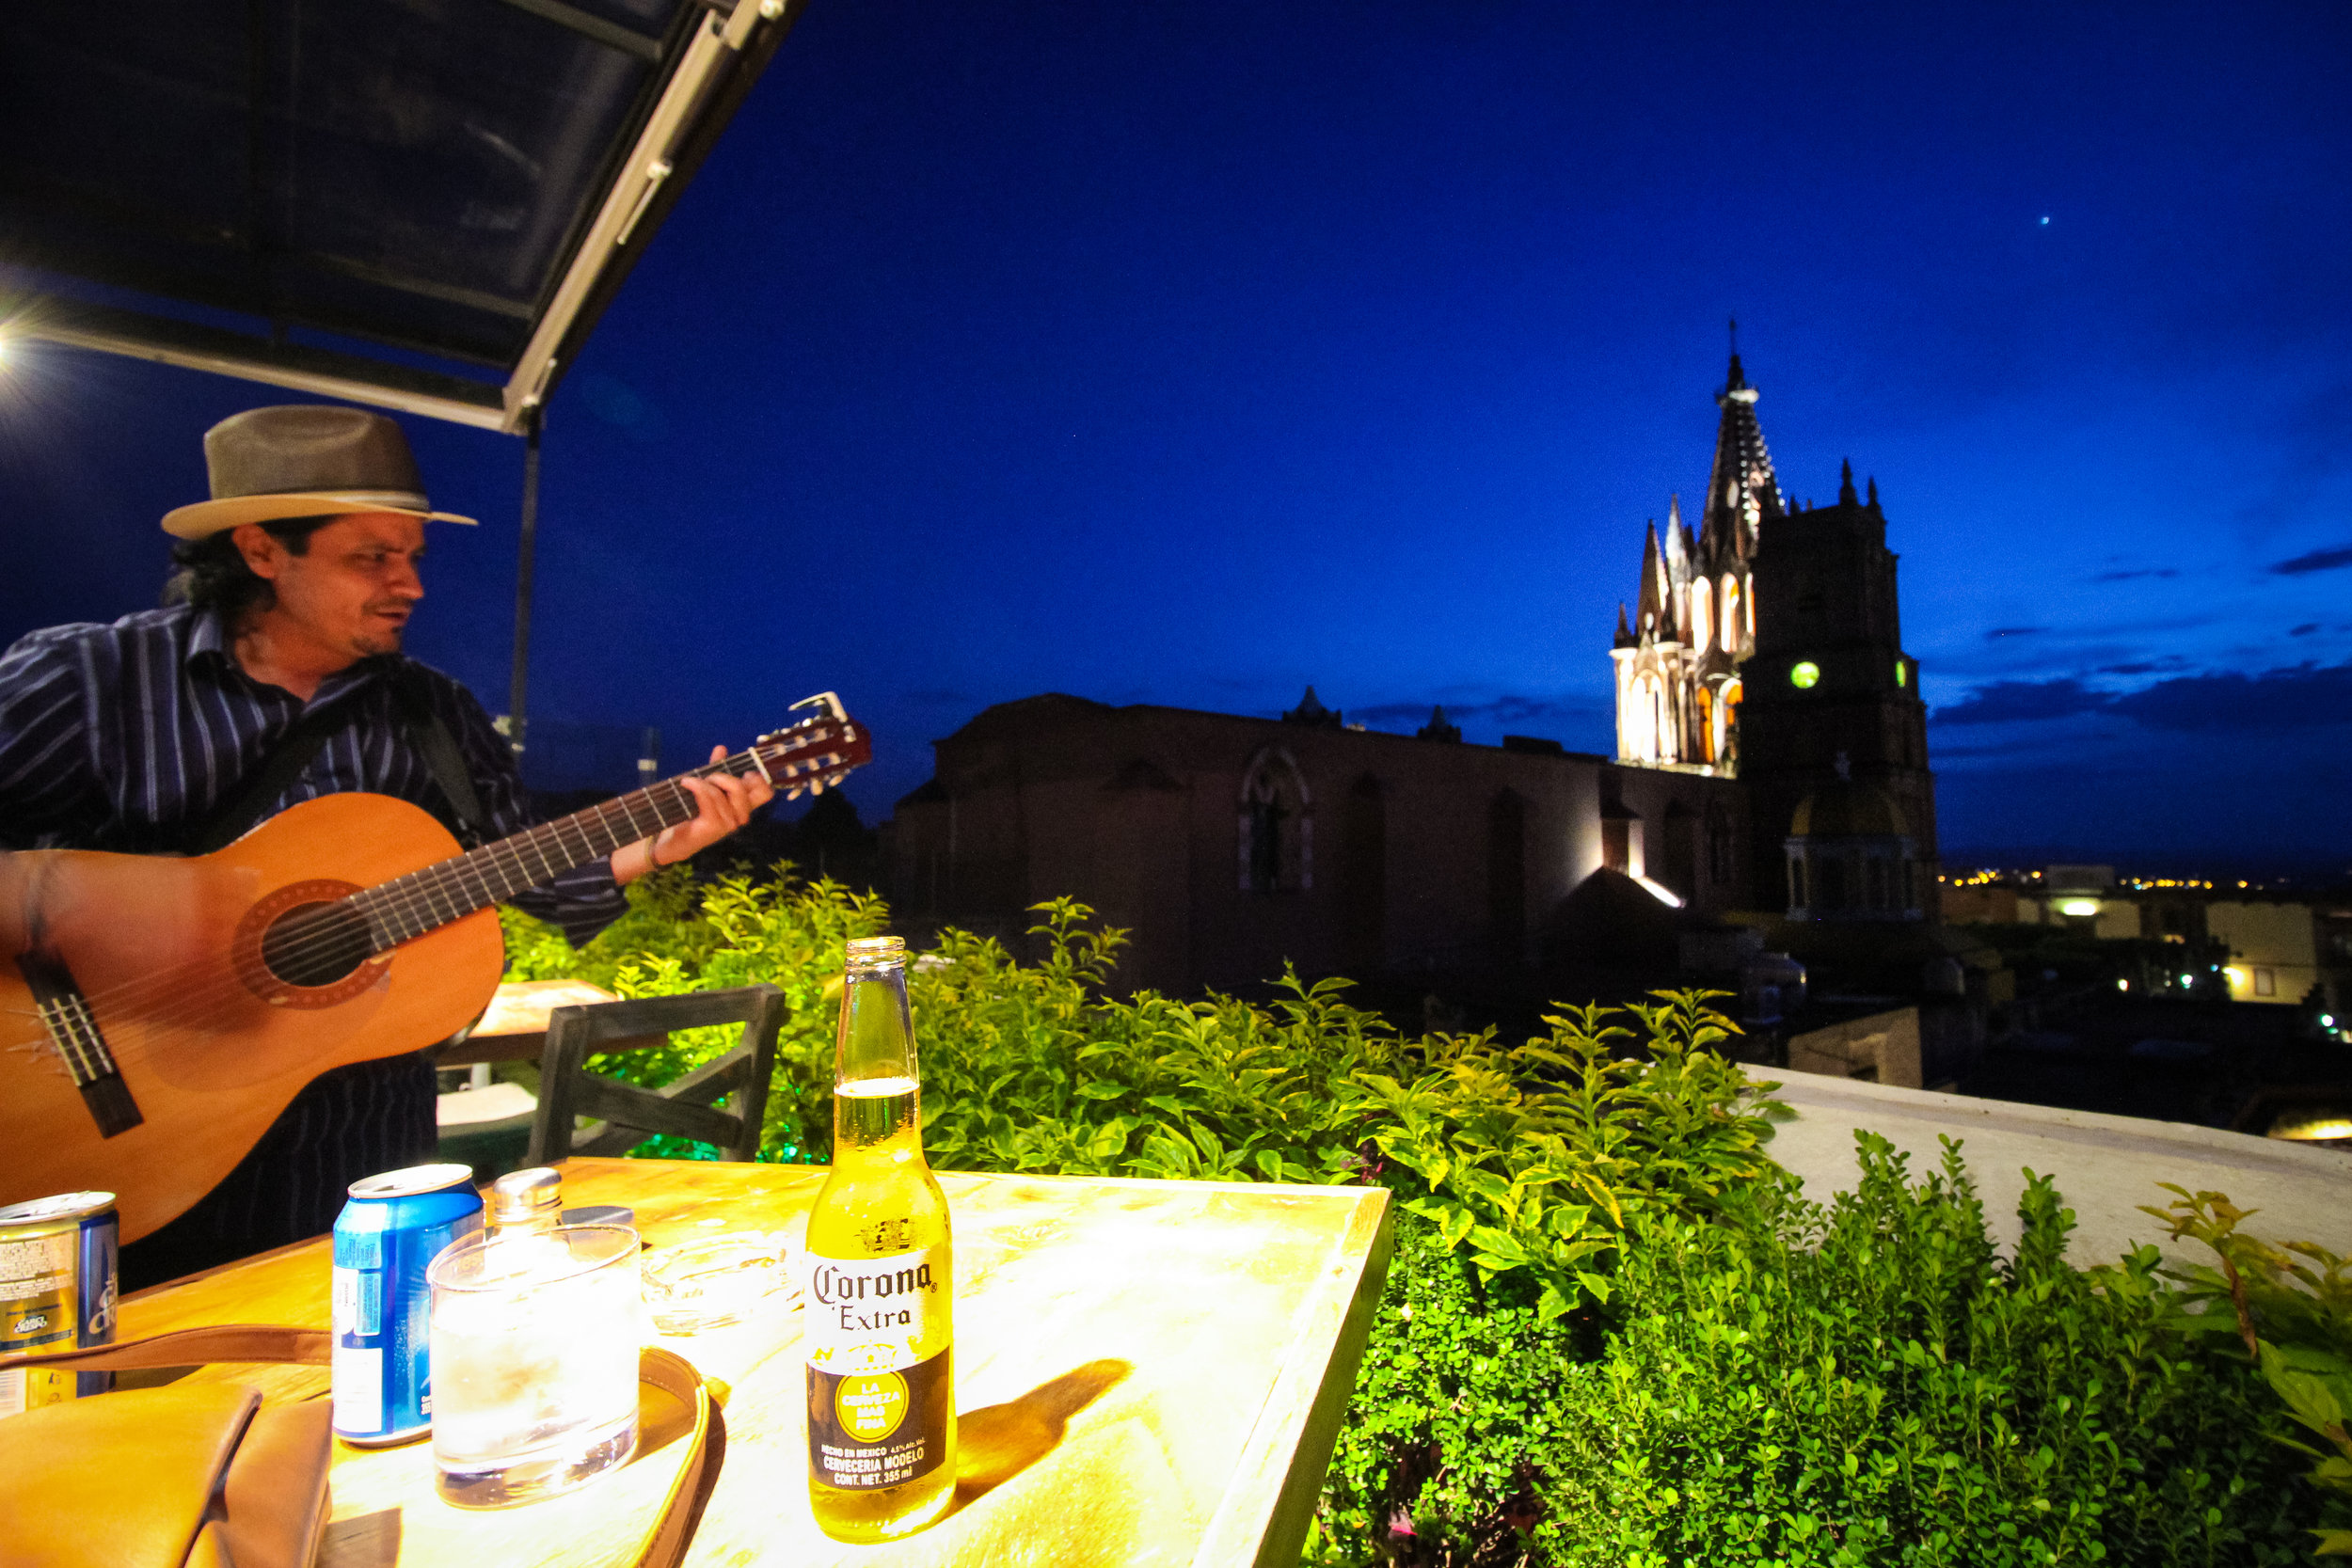 Listening to live music on the rooftop of a restaurant in San Miguel de Allende